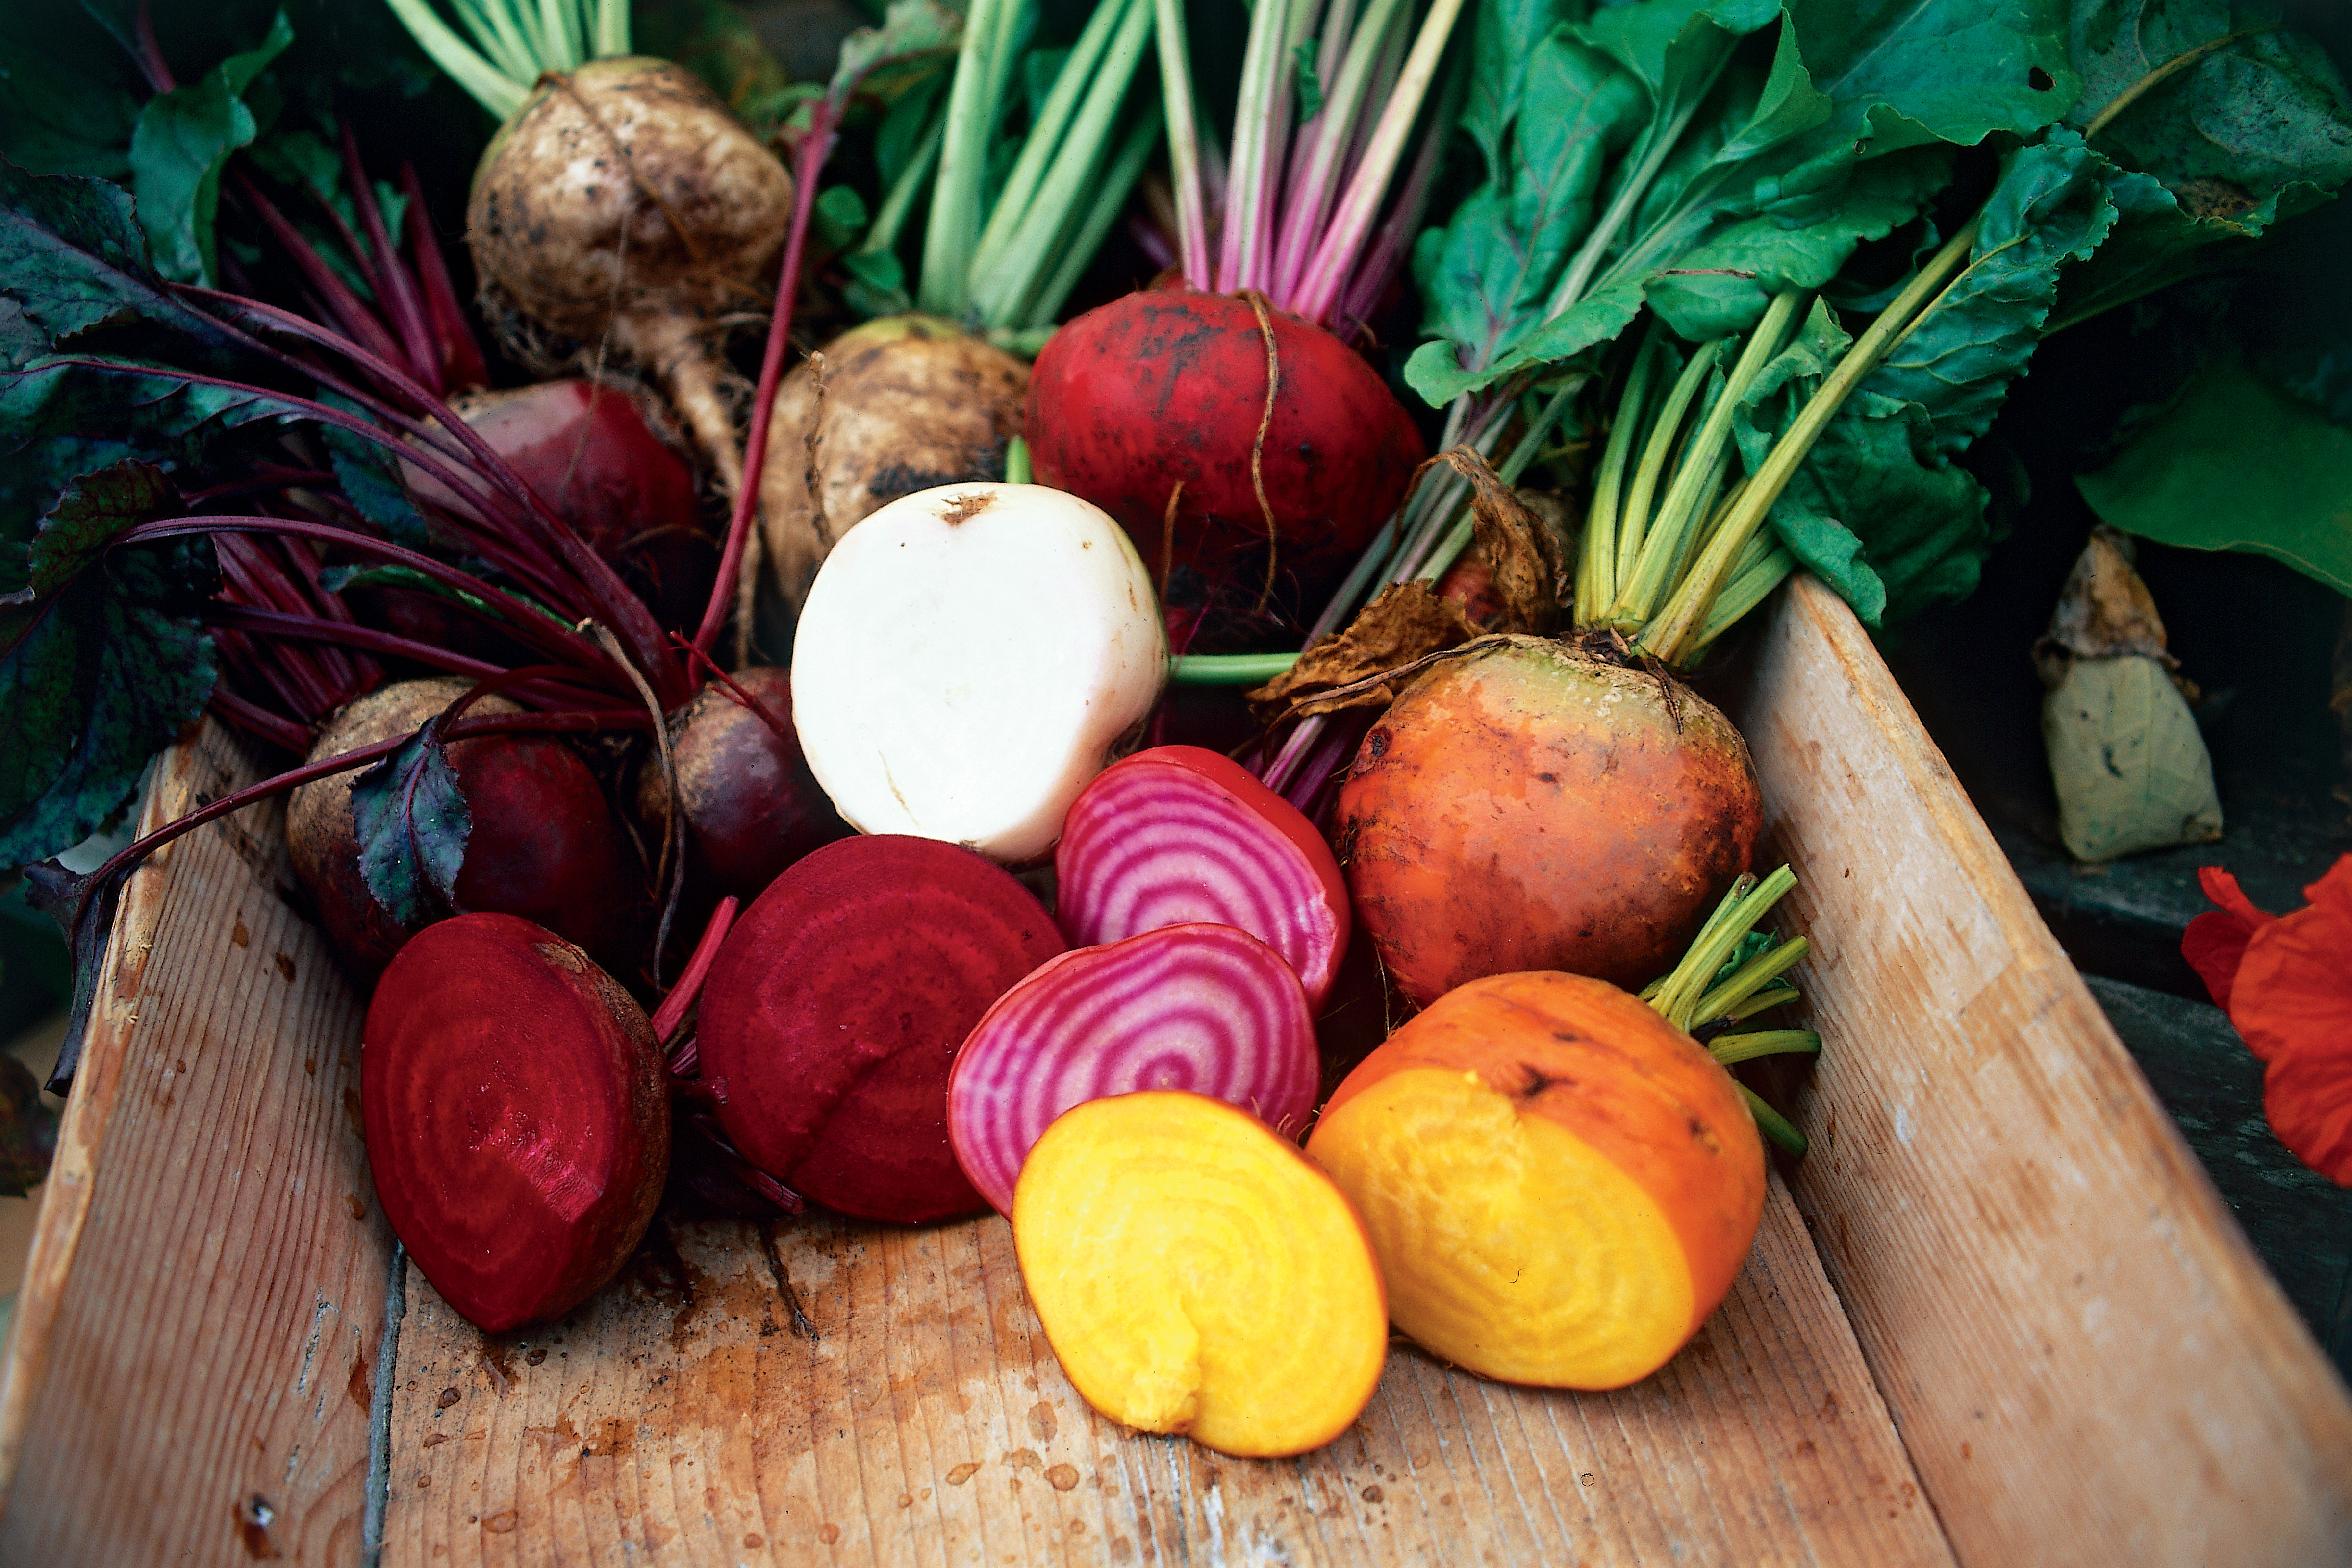 Colorful tubers and root vegetables for a healthy, gluten-free vegetarian diet.